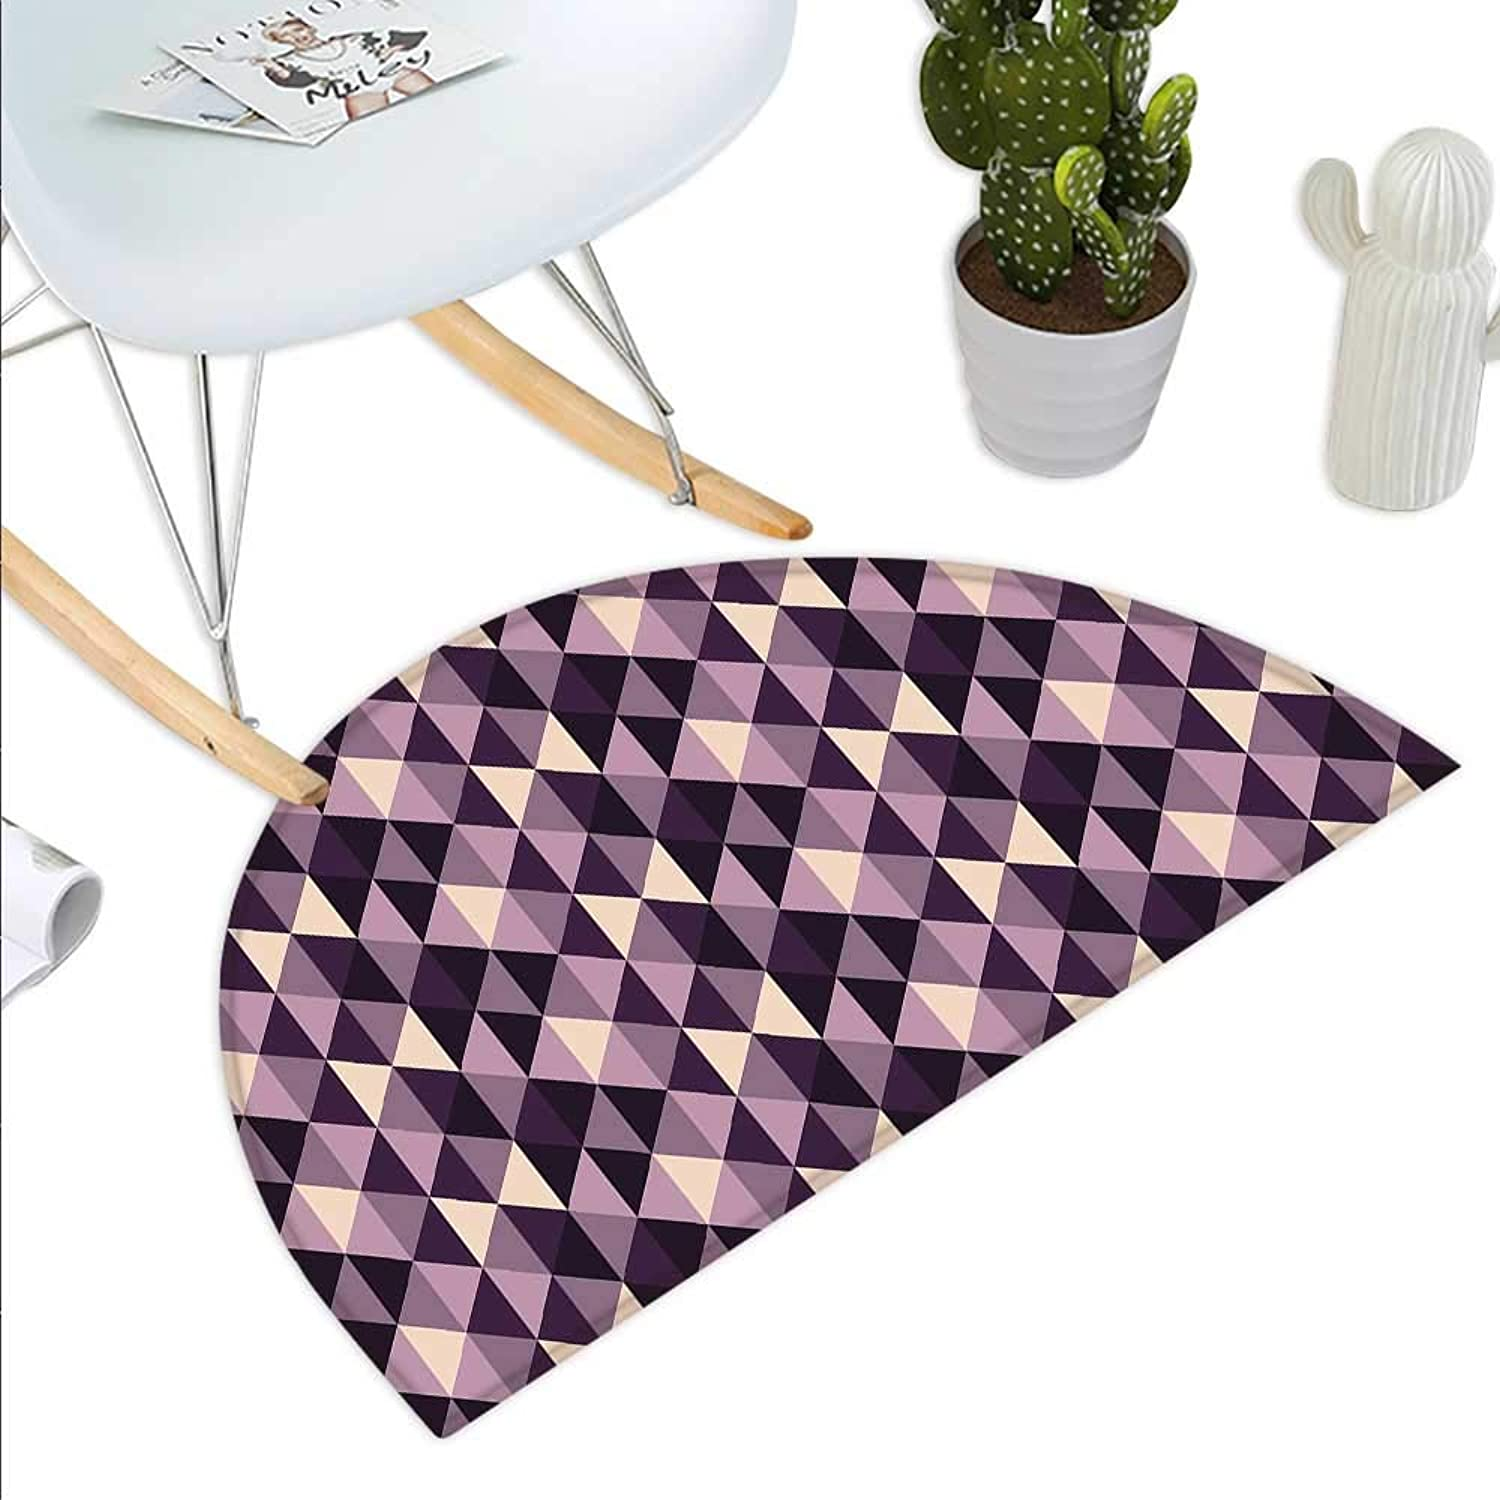 Geometric Semicircle Doormat Abstract Stylized Triangles with Dark and Pale color Shades Halfmoon doormats H 27.5  xD 41.3  Ivory Dark Purple purplec Plum